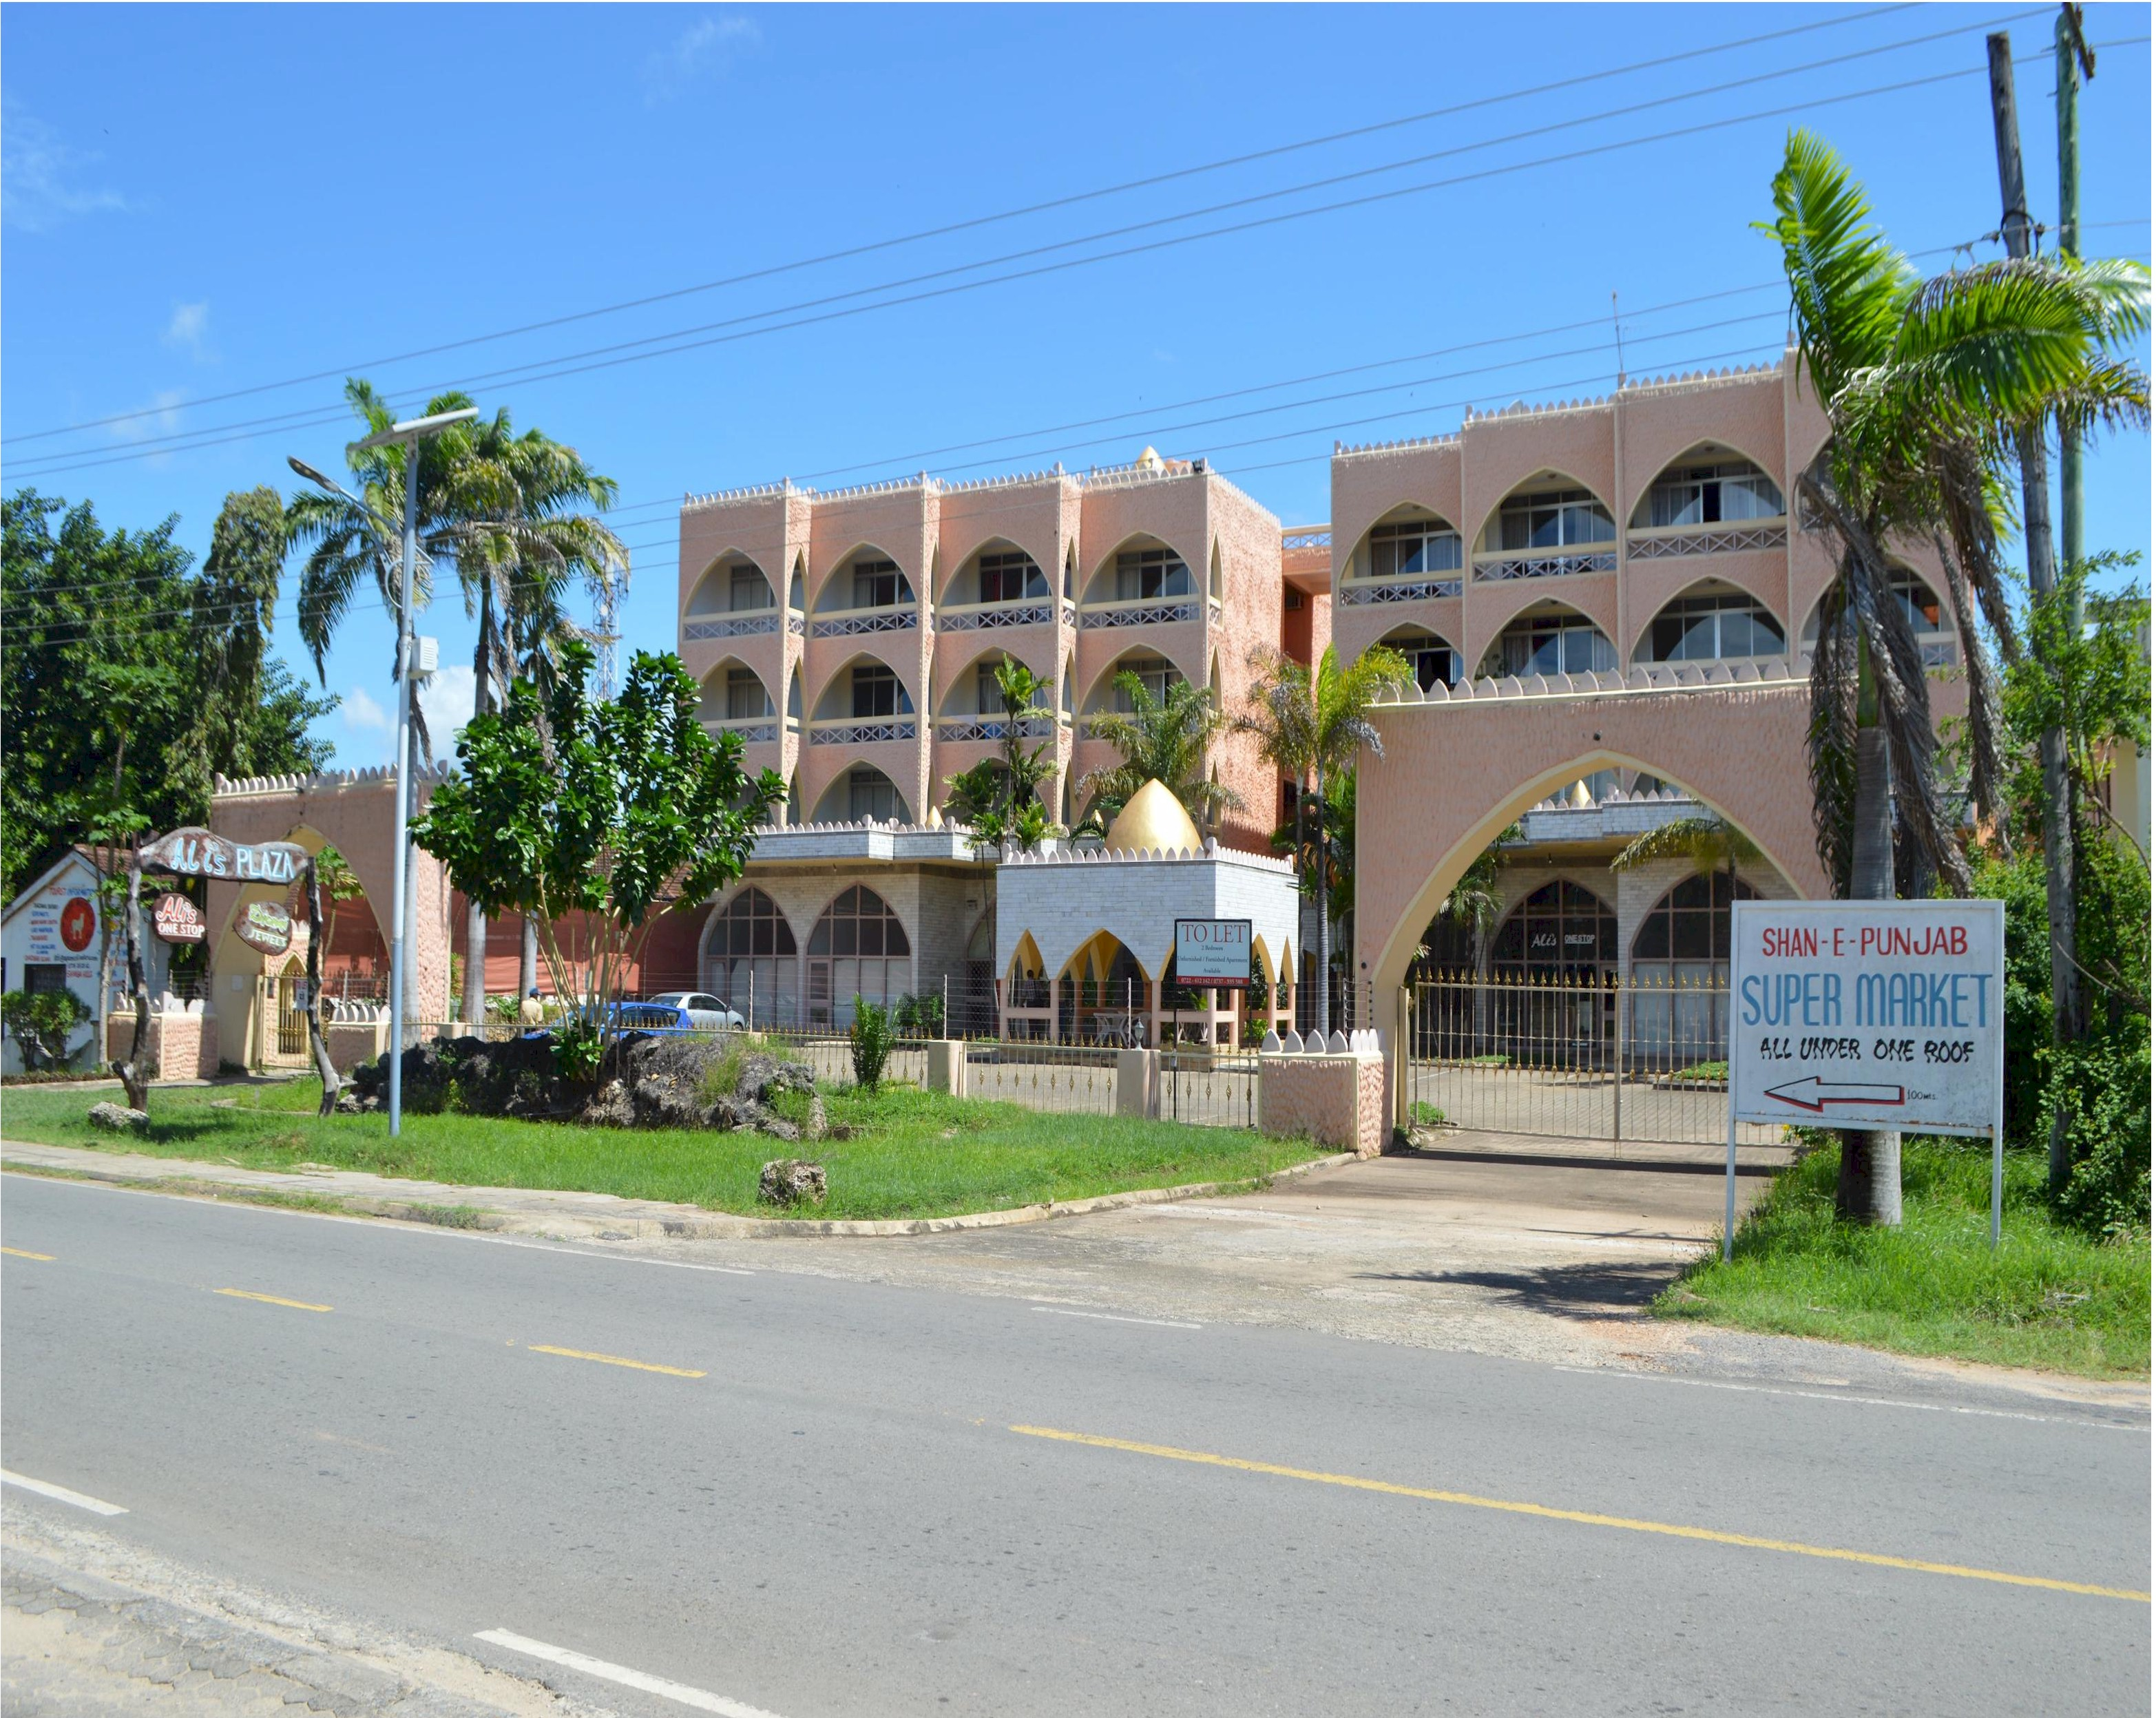 ALI'S PLAZA - DIANI BEACH ROAD, KWALE